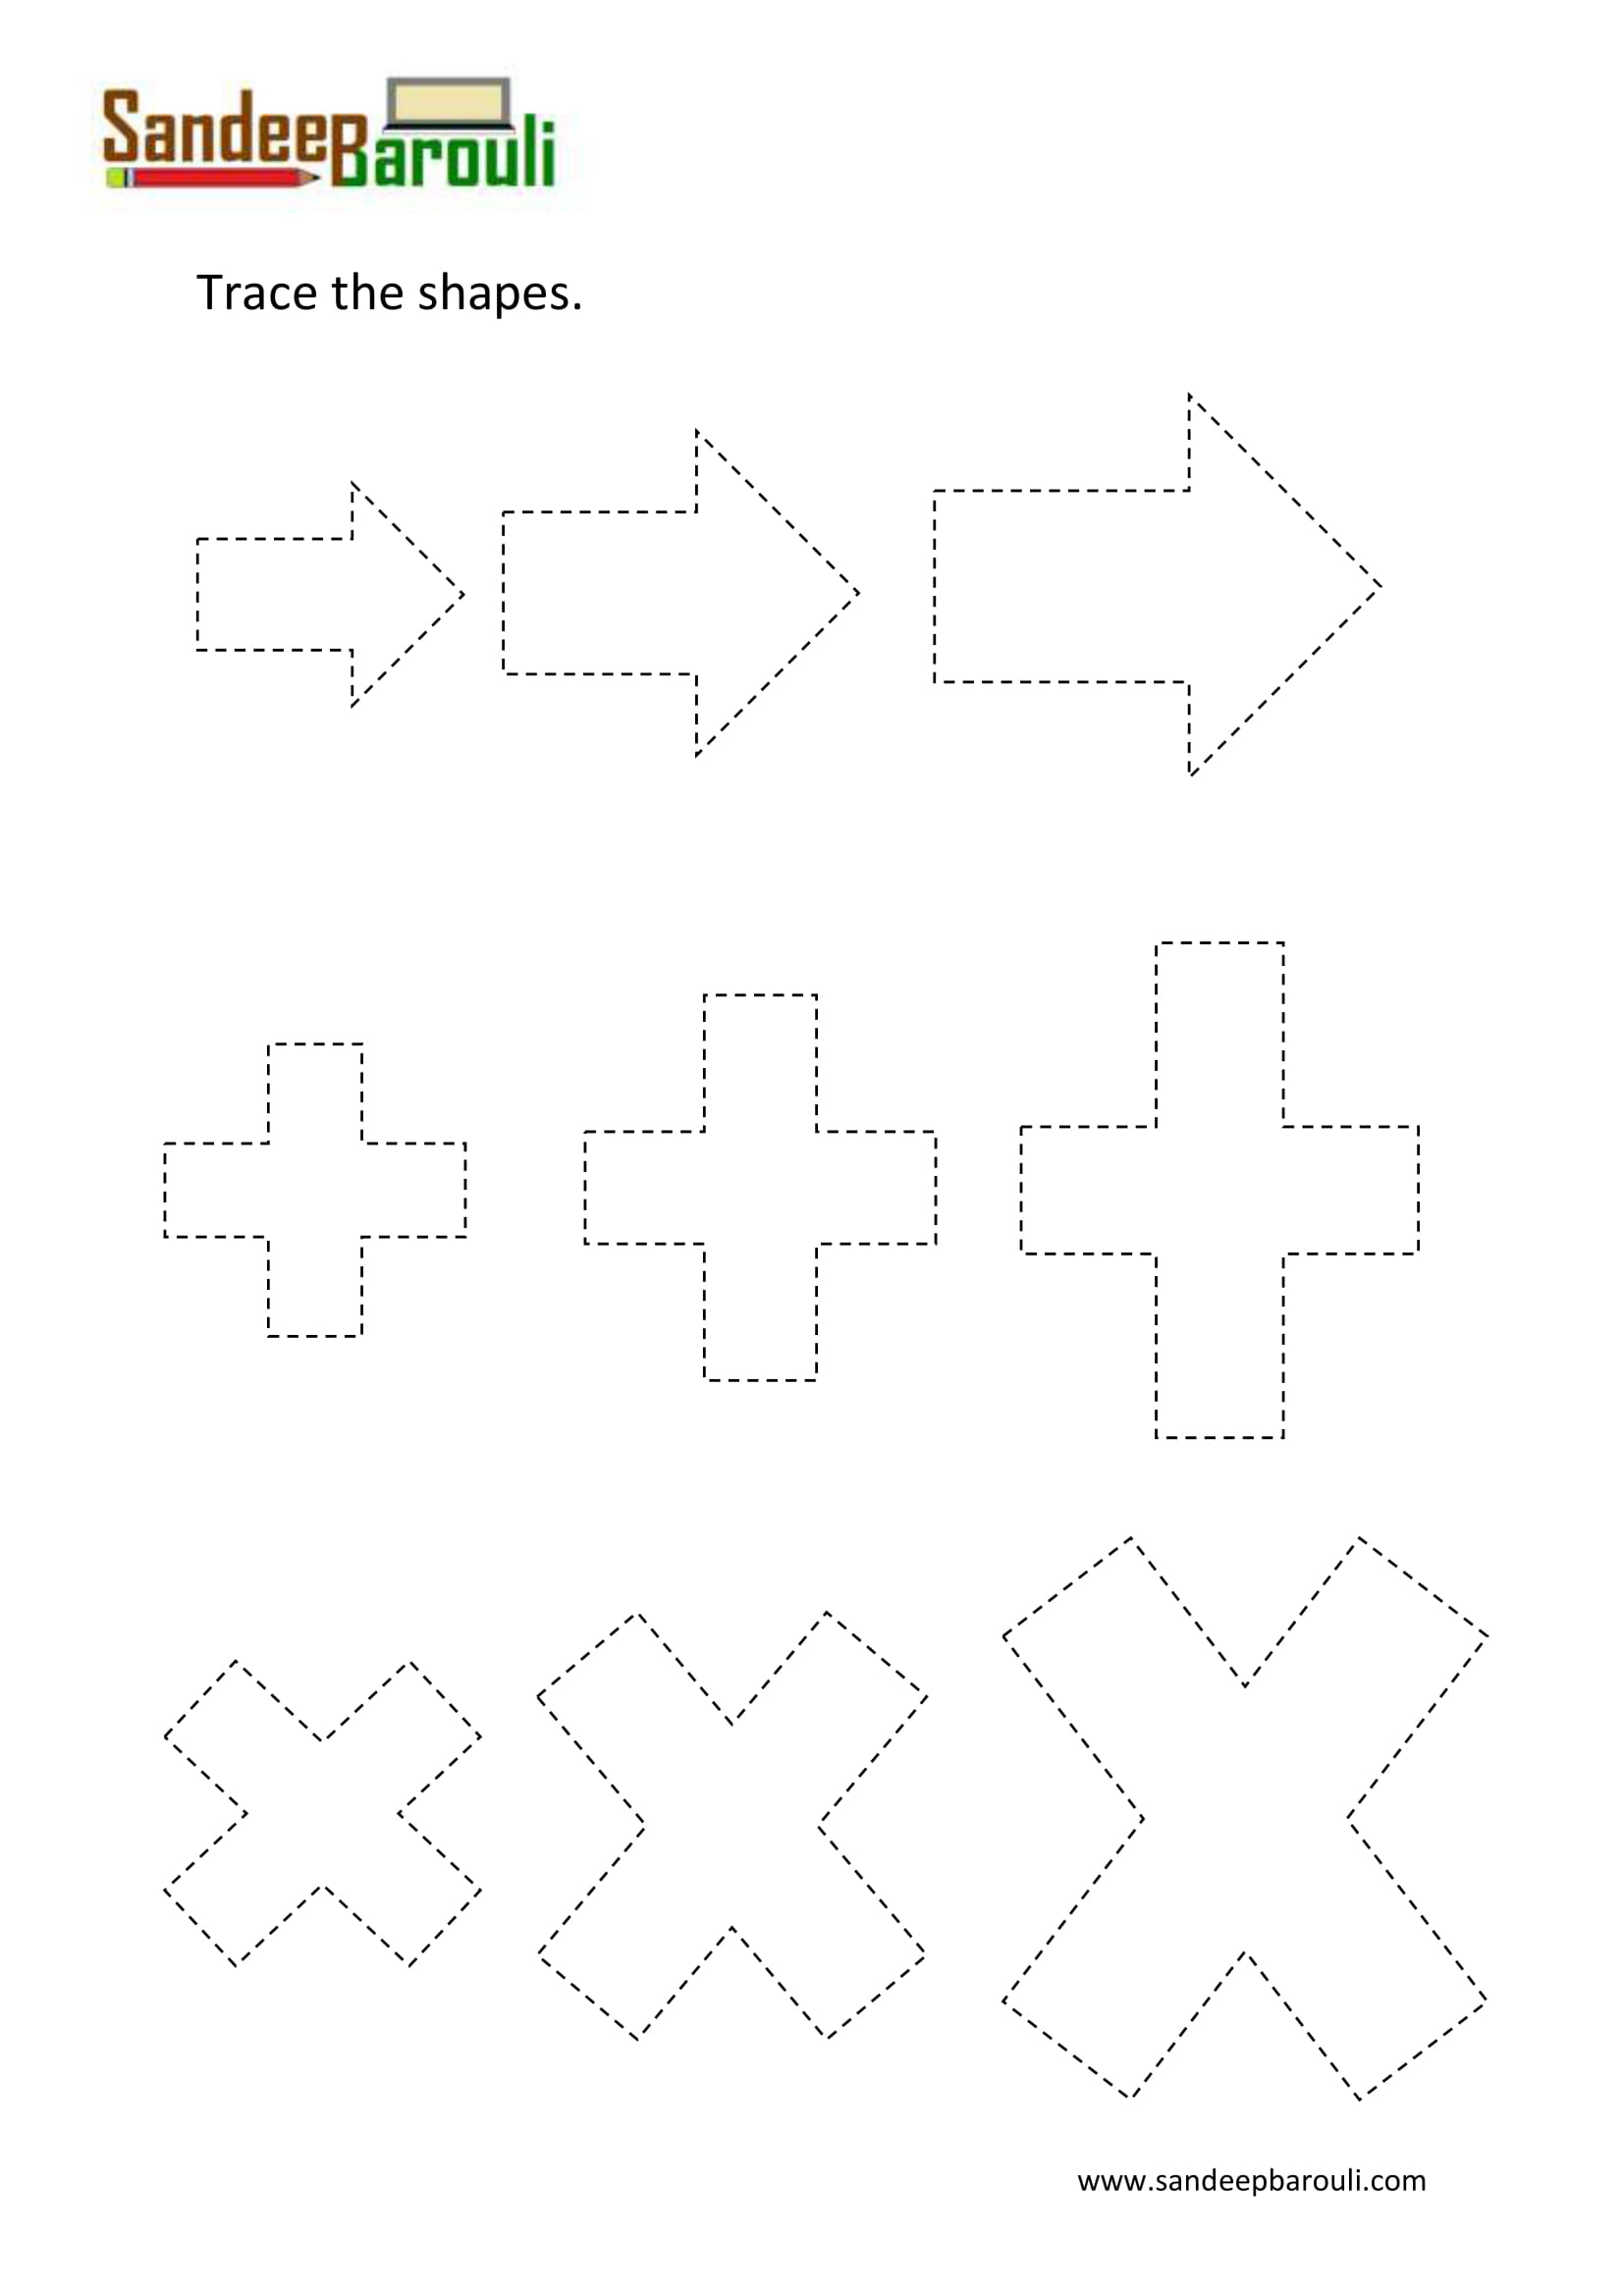 Trace The Shapes Worksheet 2 1 Sandeepbarouli